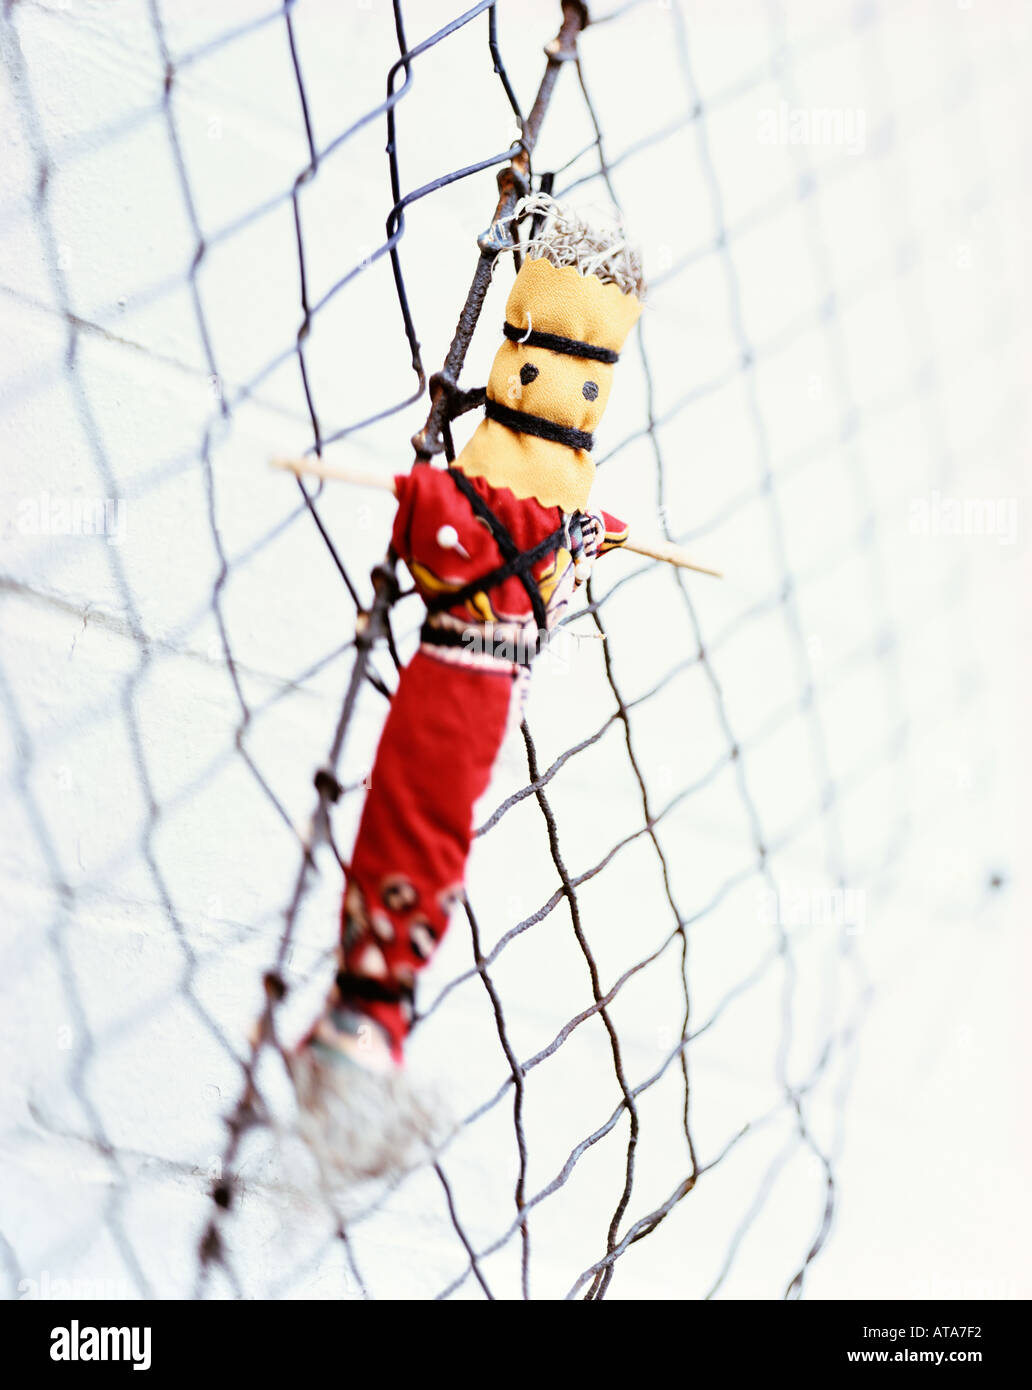 voodoo doll on fence - Stock Image